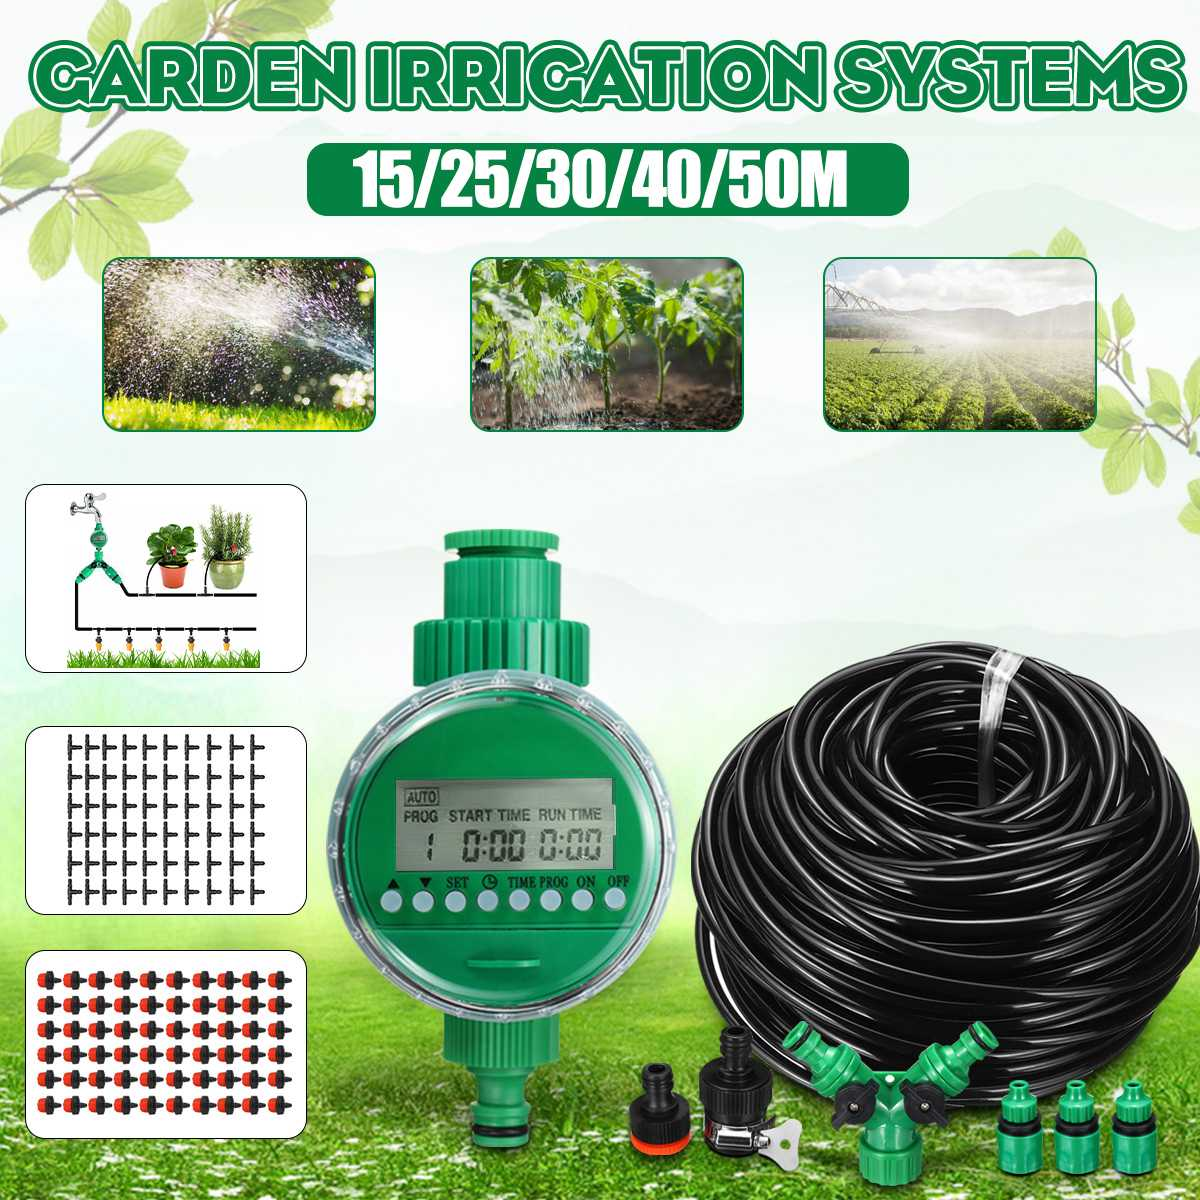 15/25/30/40/50m Automatic Watering Timer Irrigation System Greenhouse Plant Kit for Flowers Plants Bonsai Intelligent Care